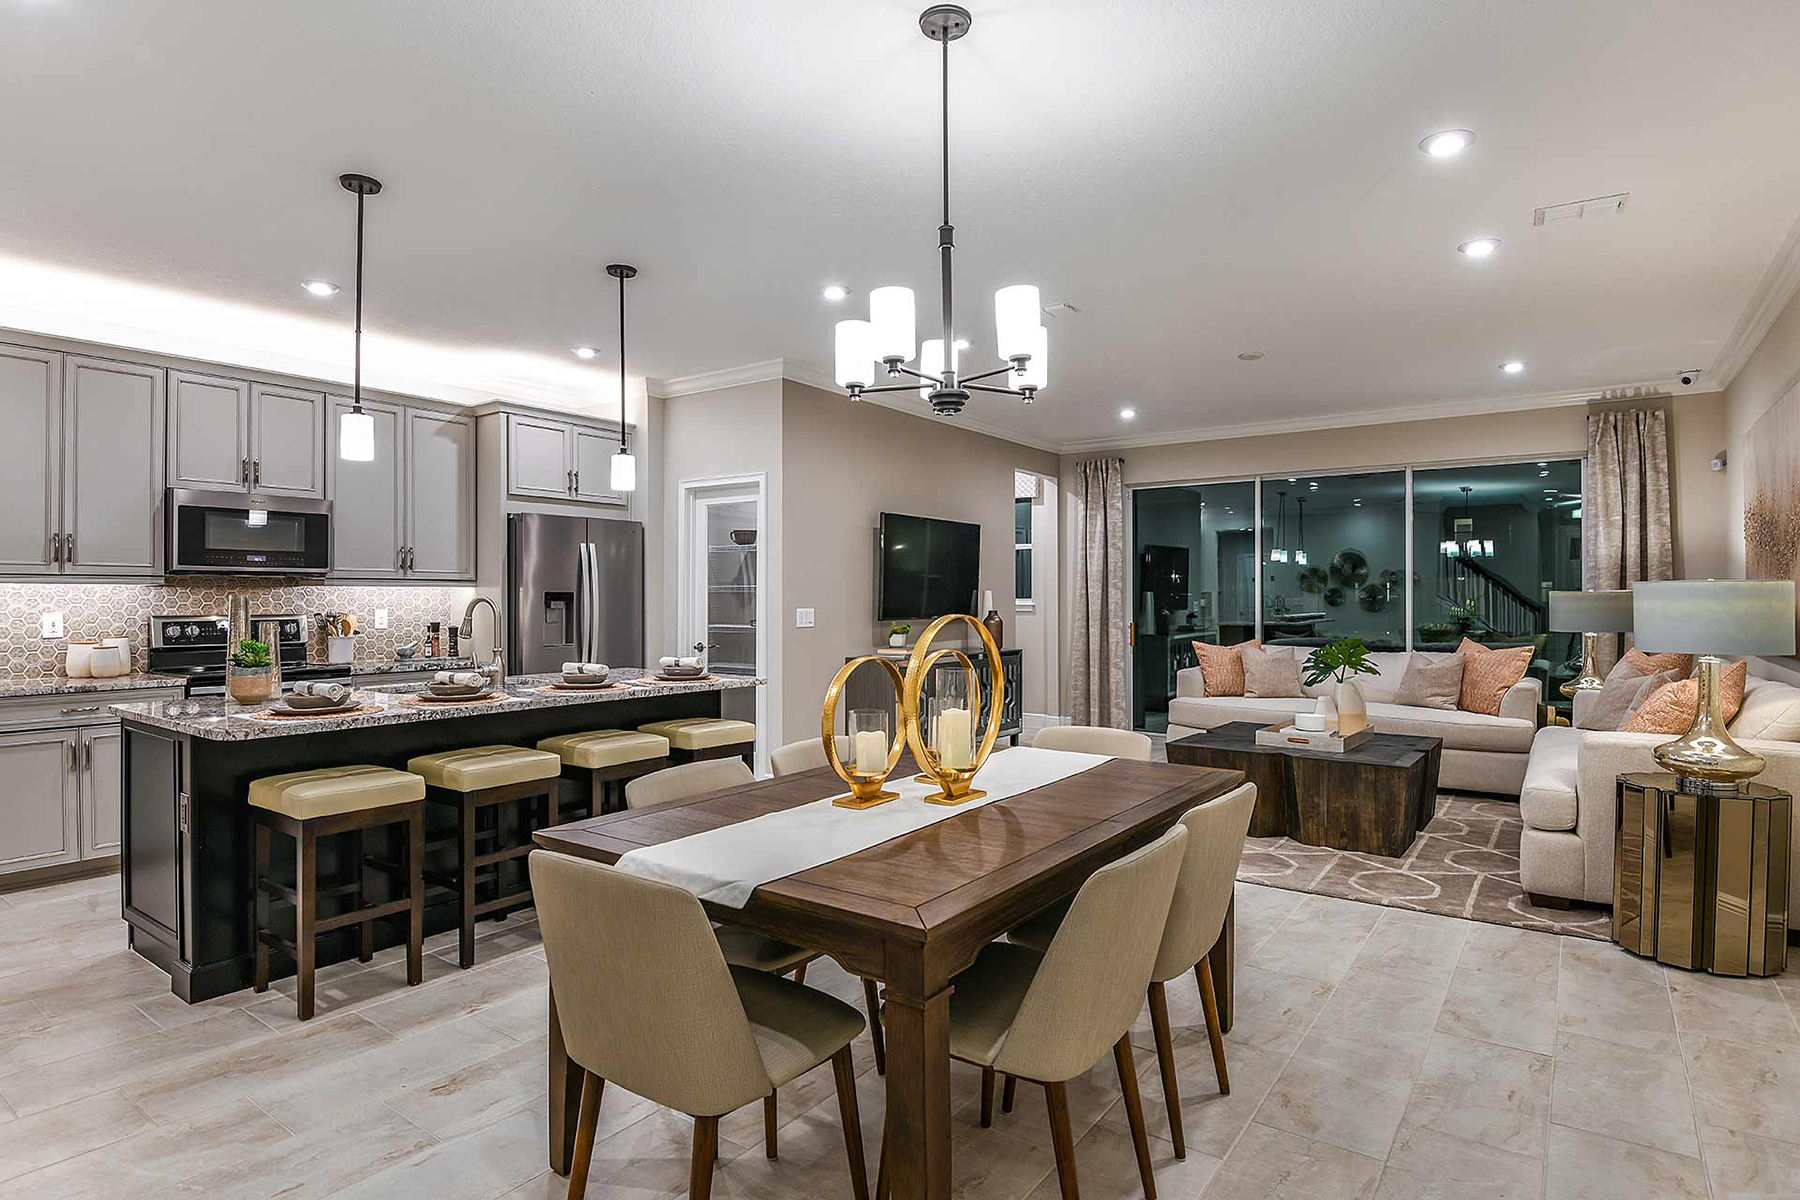 Sebring Plan Dining at Avea Pointe in Lutz Florida by Mattamy Homes